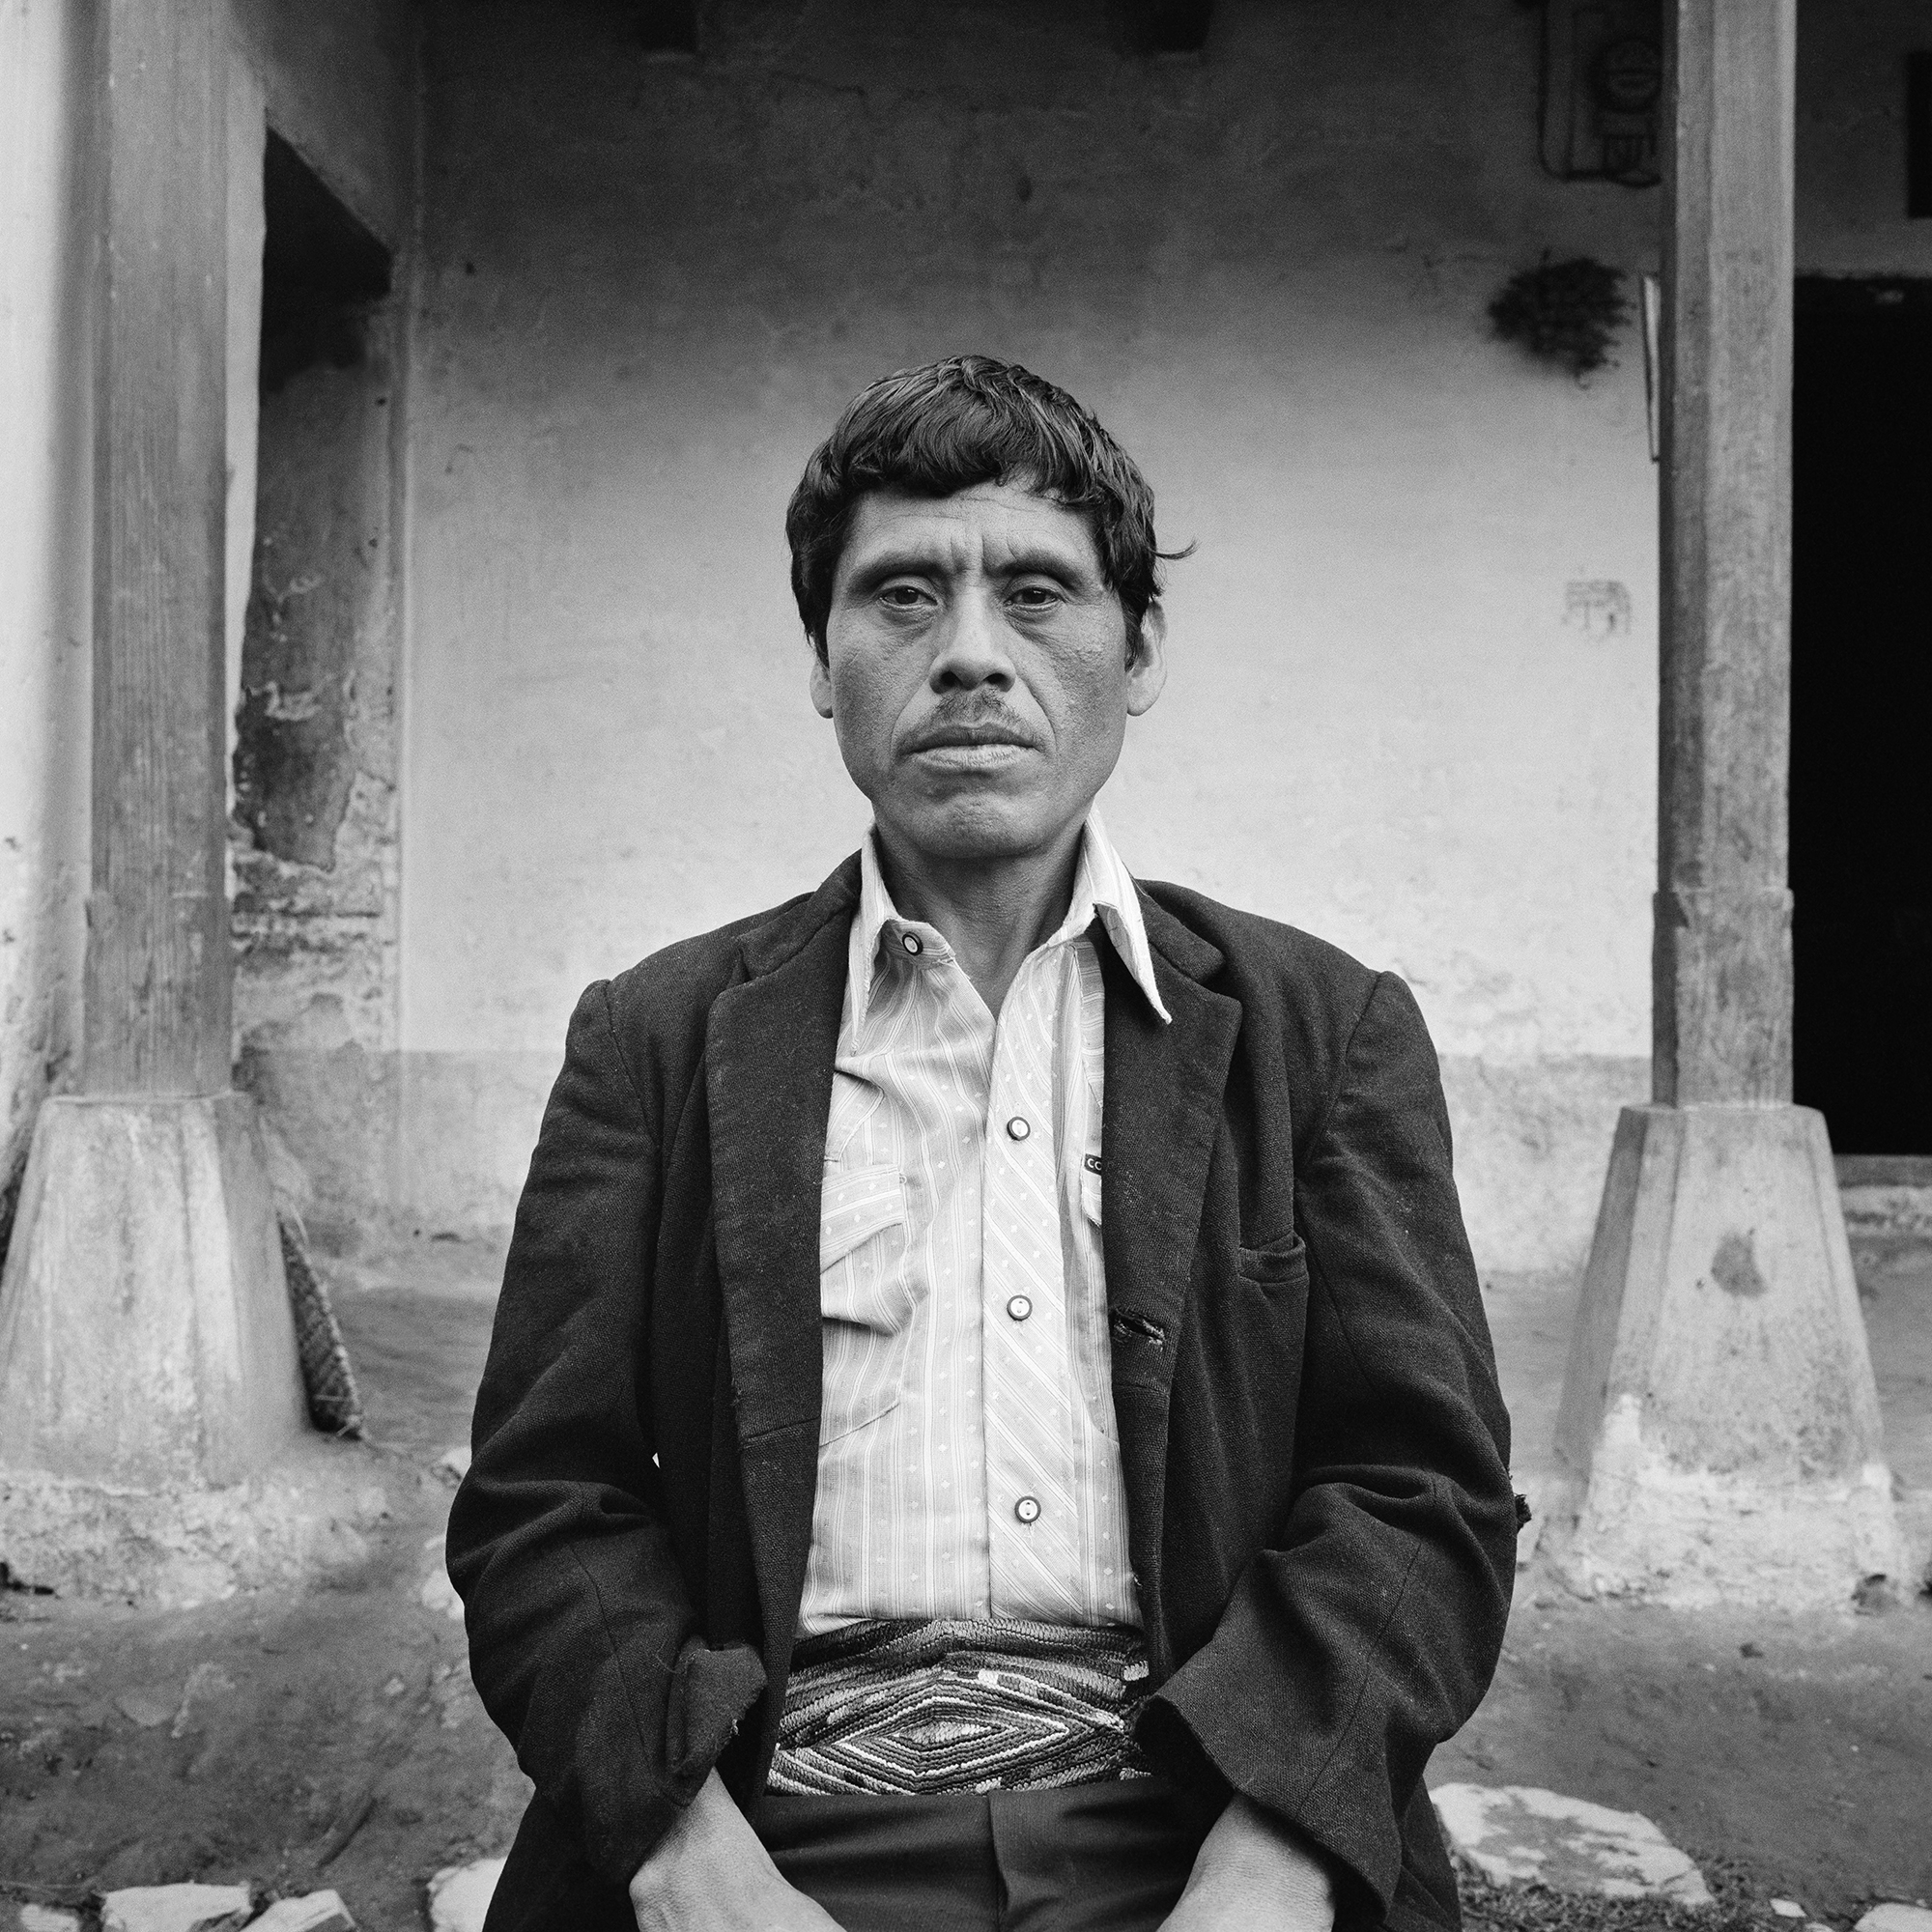 Señor Brito, the Ixil Maya husband of Petrona Brito, sits for a picture in Nebaj, Guatemala, January 1, 1984. During the mid-1980's, the Guatemalan army forced Señor Brito to join a Civil Defense Patrol where he became sick from long exposures to cold weather and eventually succumbed to a respiratory illness.